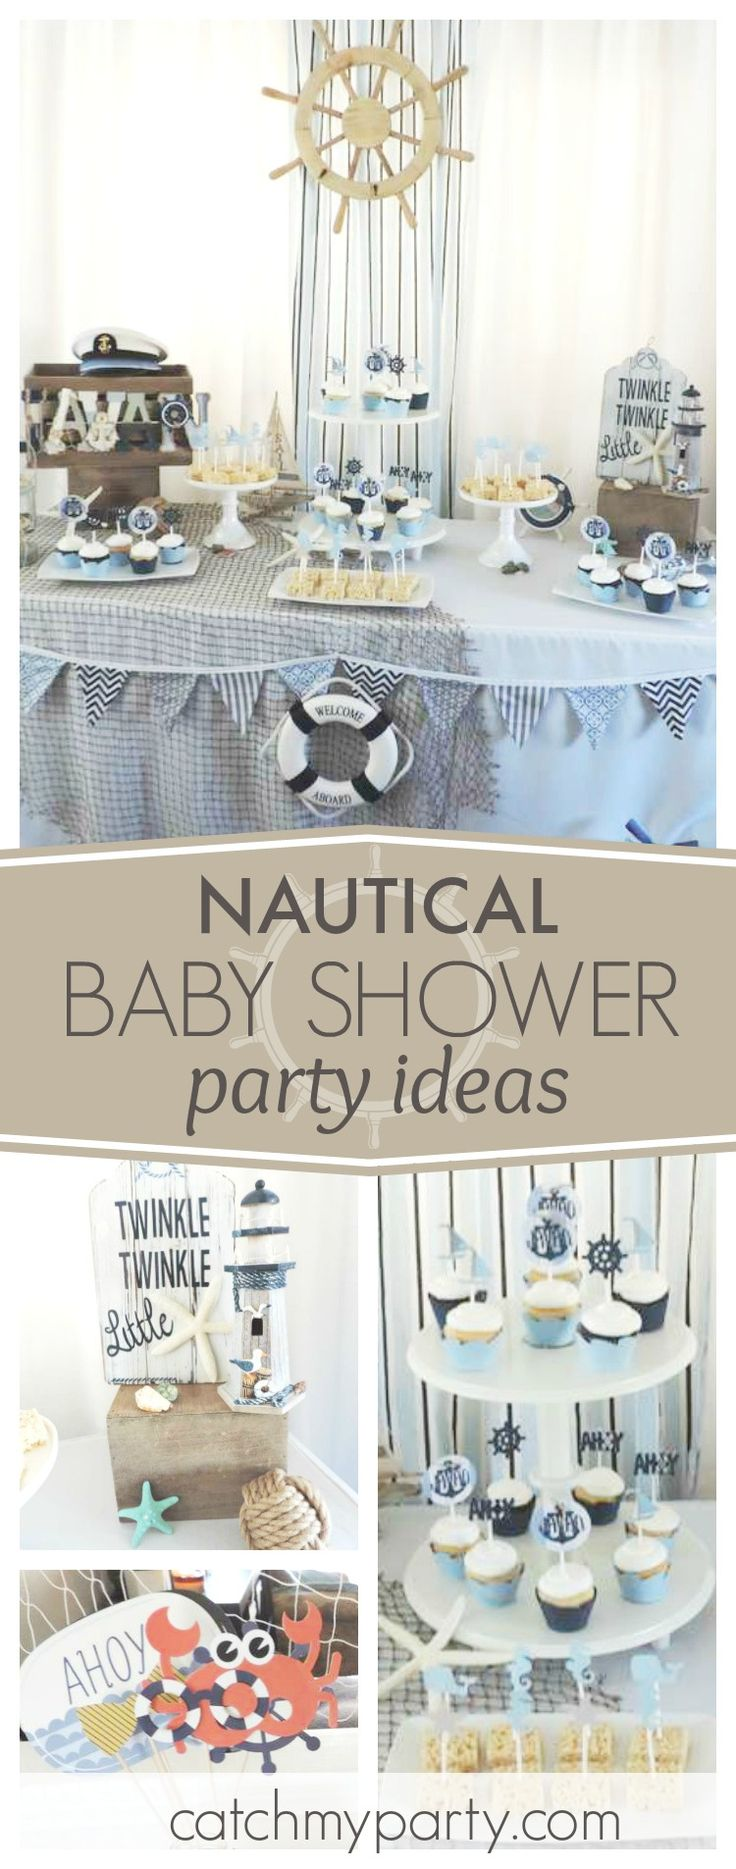 Check out this adorable Nautical Baby Shower! The dessert table is gorgeous!! See more party ideas and share yours at CatchMyParty.com